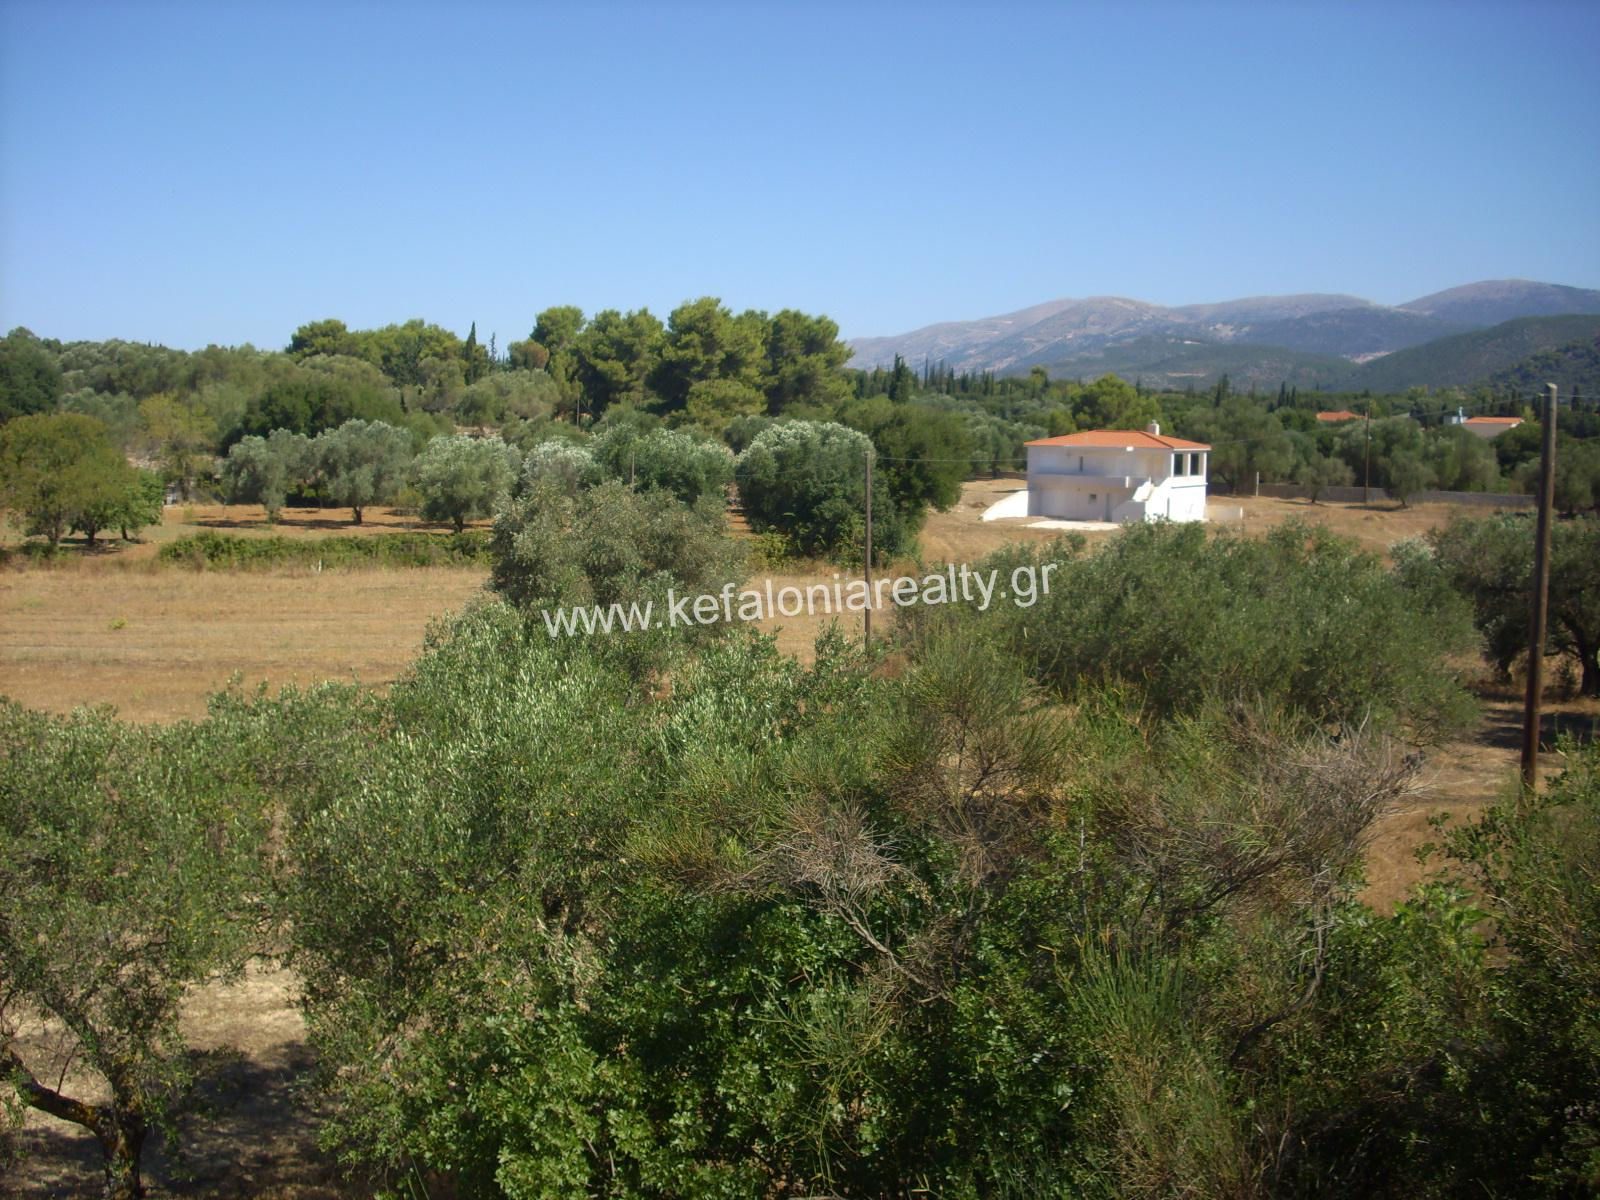 Land For Sale In Metaxata Village